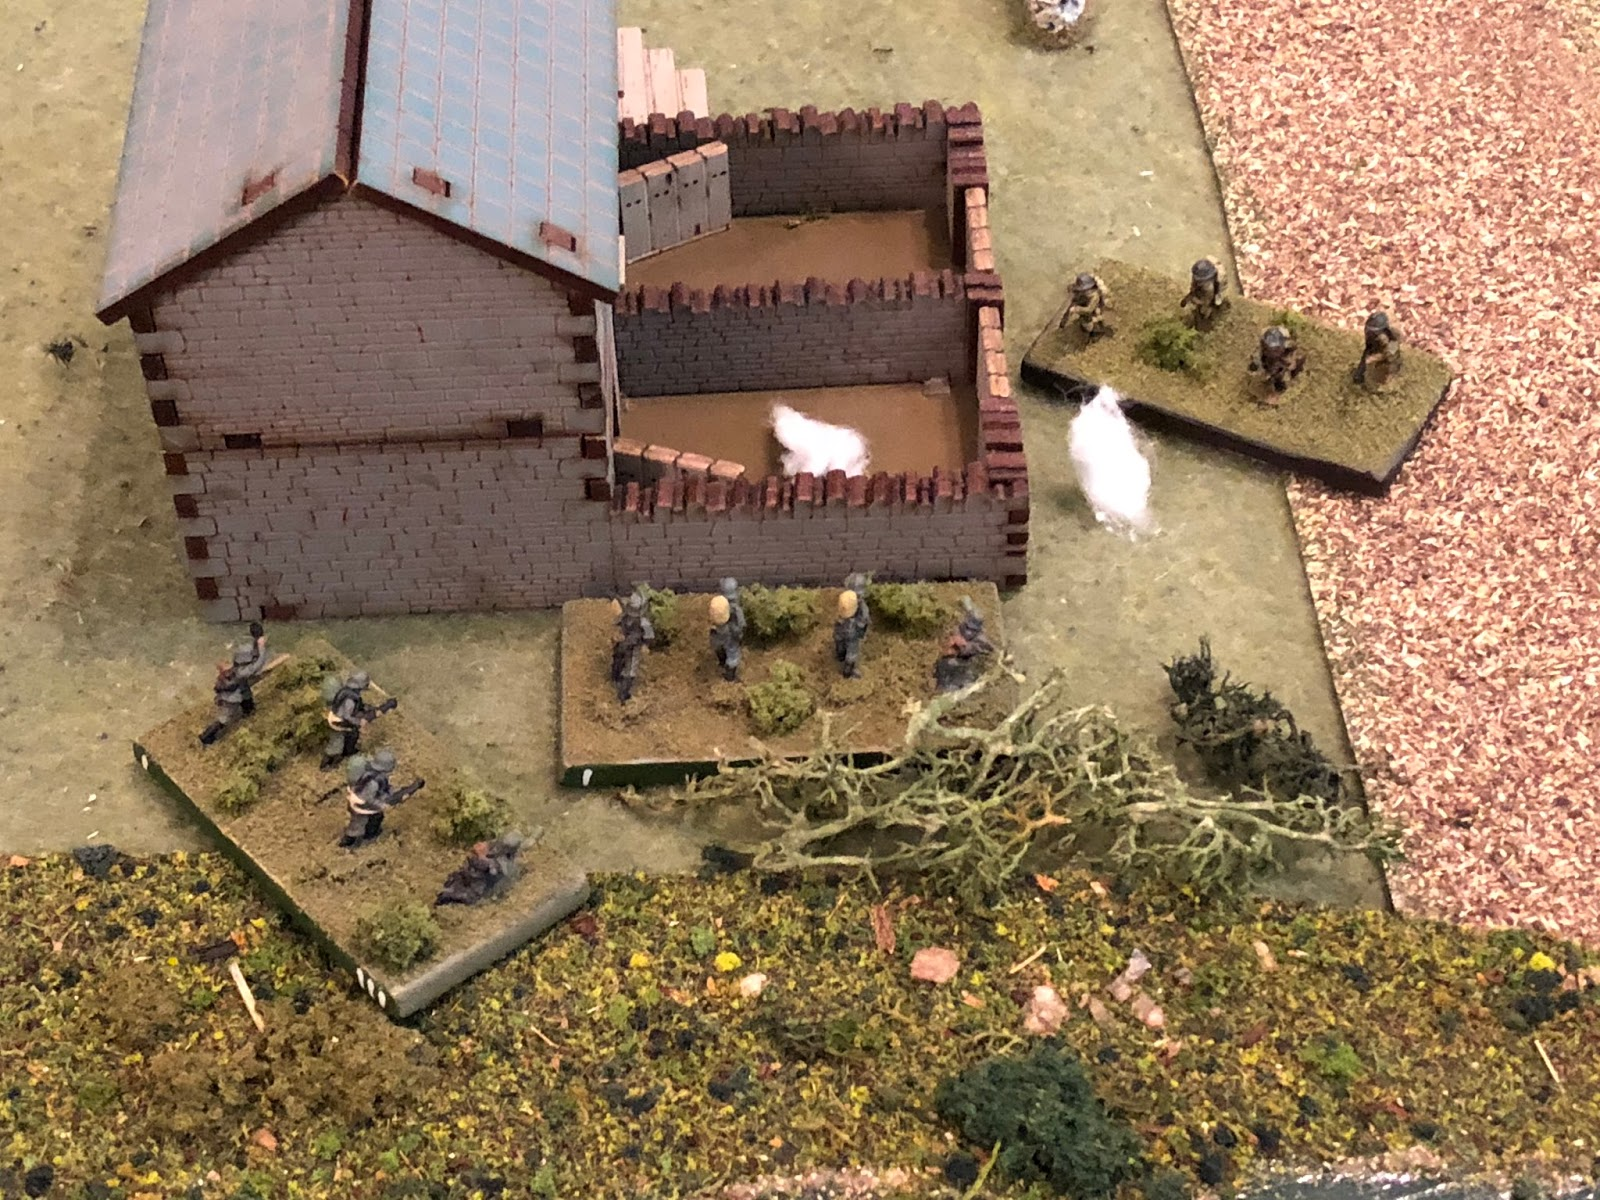 Sgt Barkstrom moves his squad over (bottom left) and rallies Sgt Hafl's squad back into the fight, just as Adrian helmets begin popping up over the wall to their right...